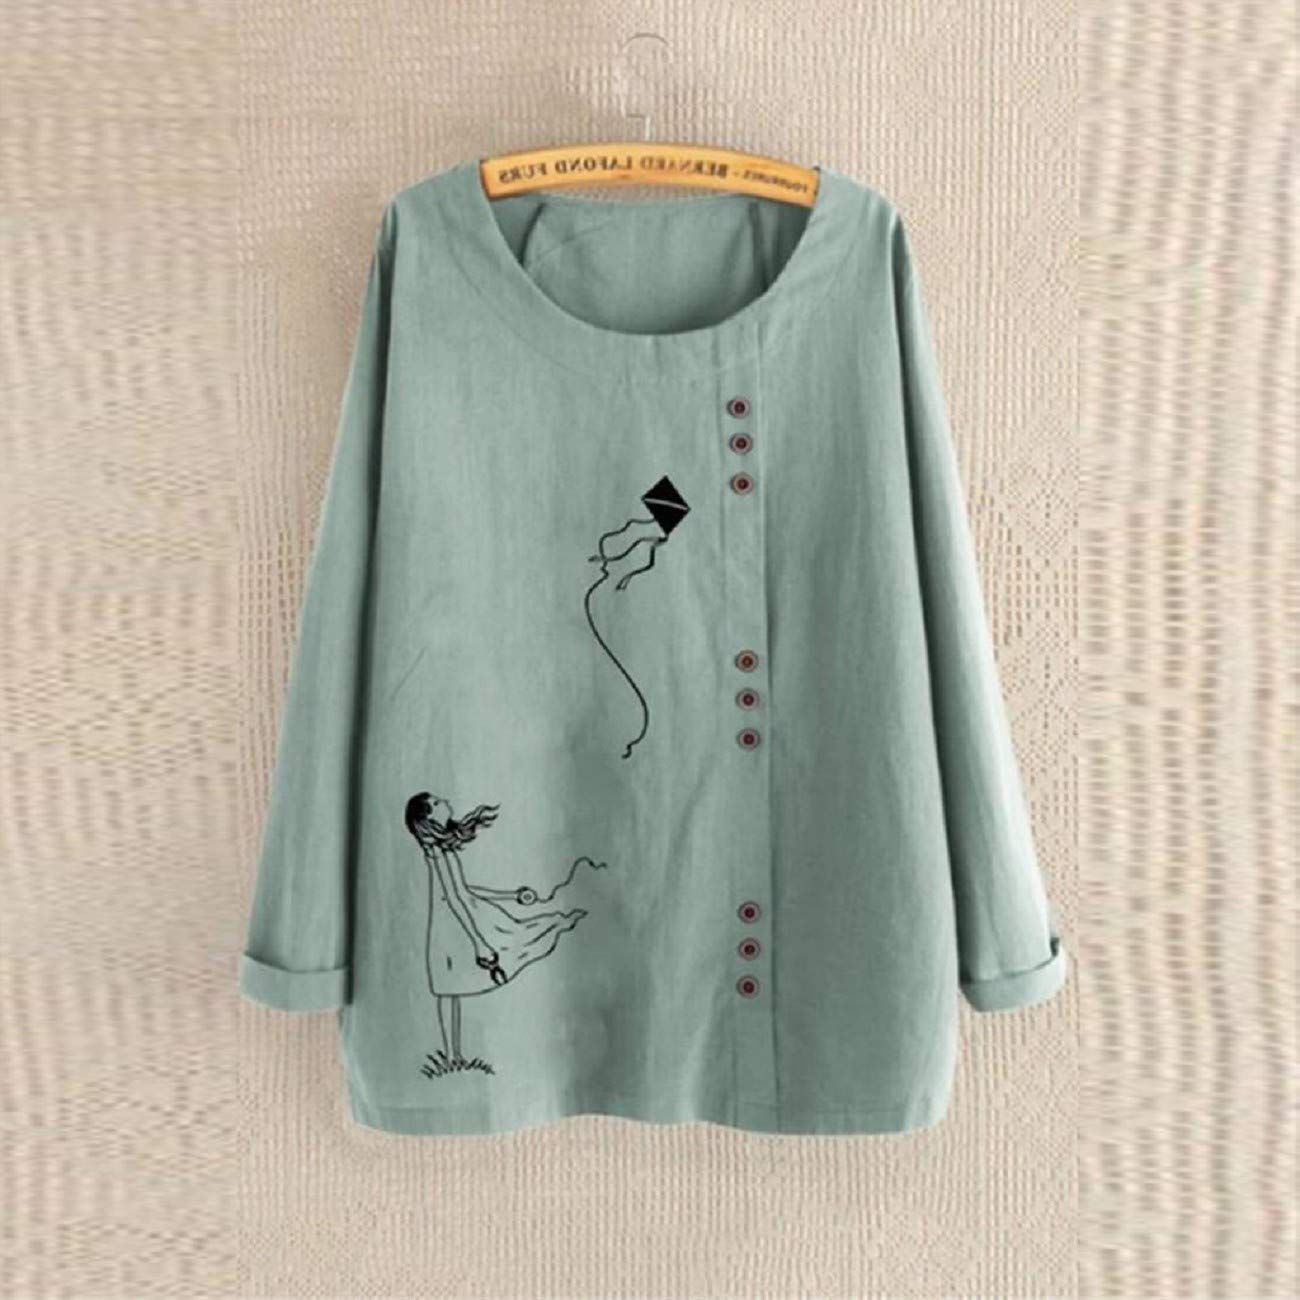 Stylish Plus Size Round Neck Long Sleeve Button Down Pullover Tunic Tops Blouse JKLING Women Graphic Print T-Shirts